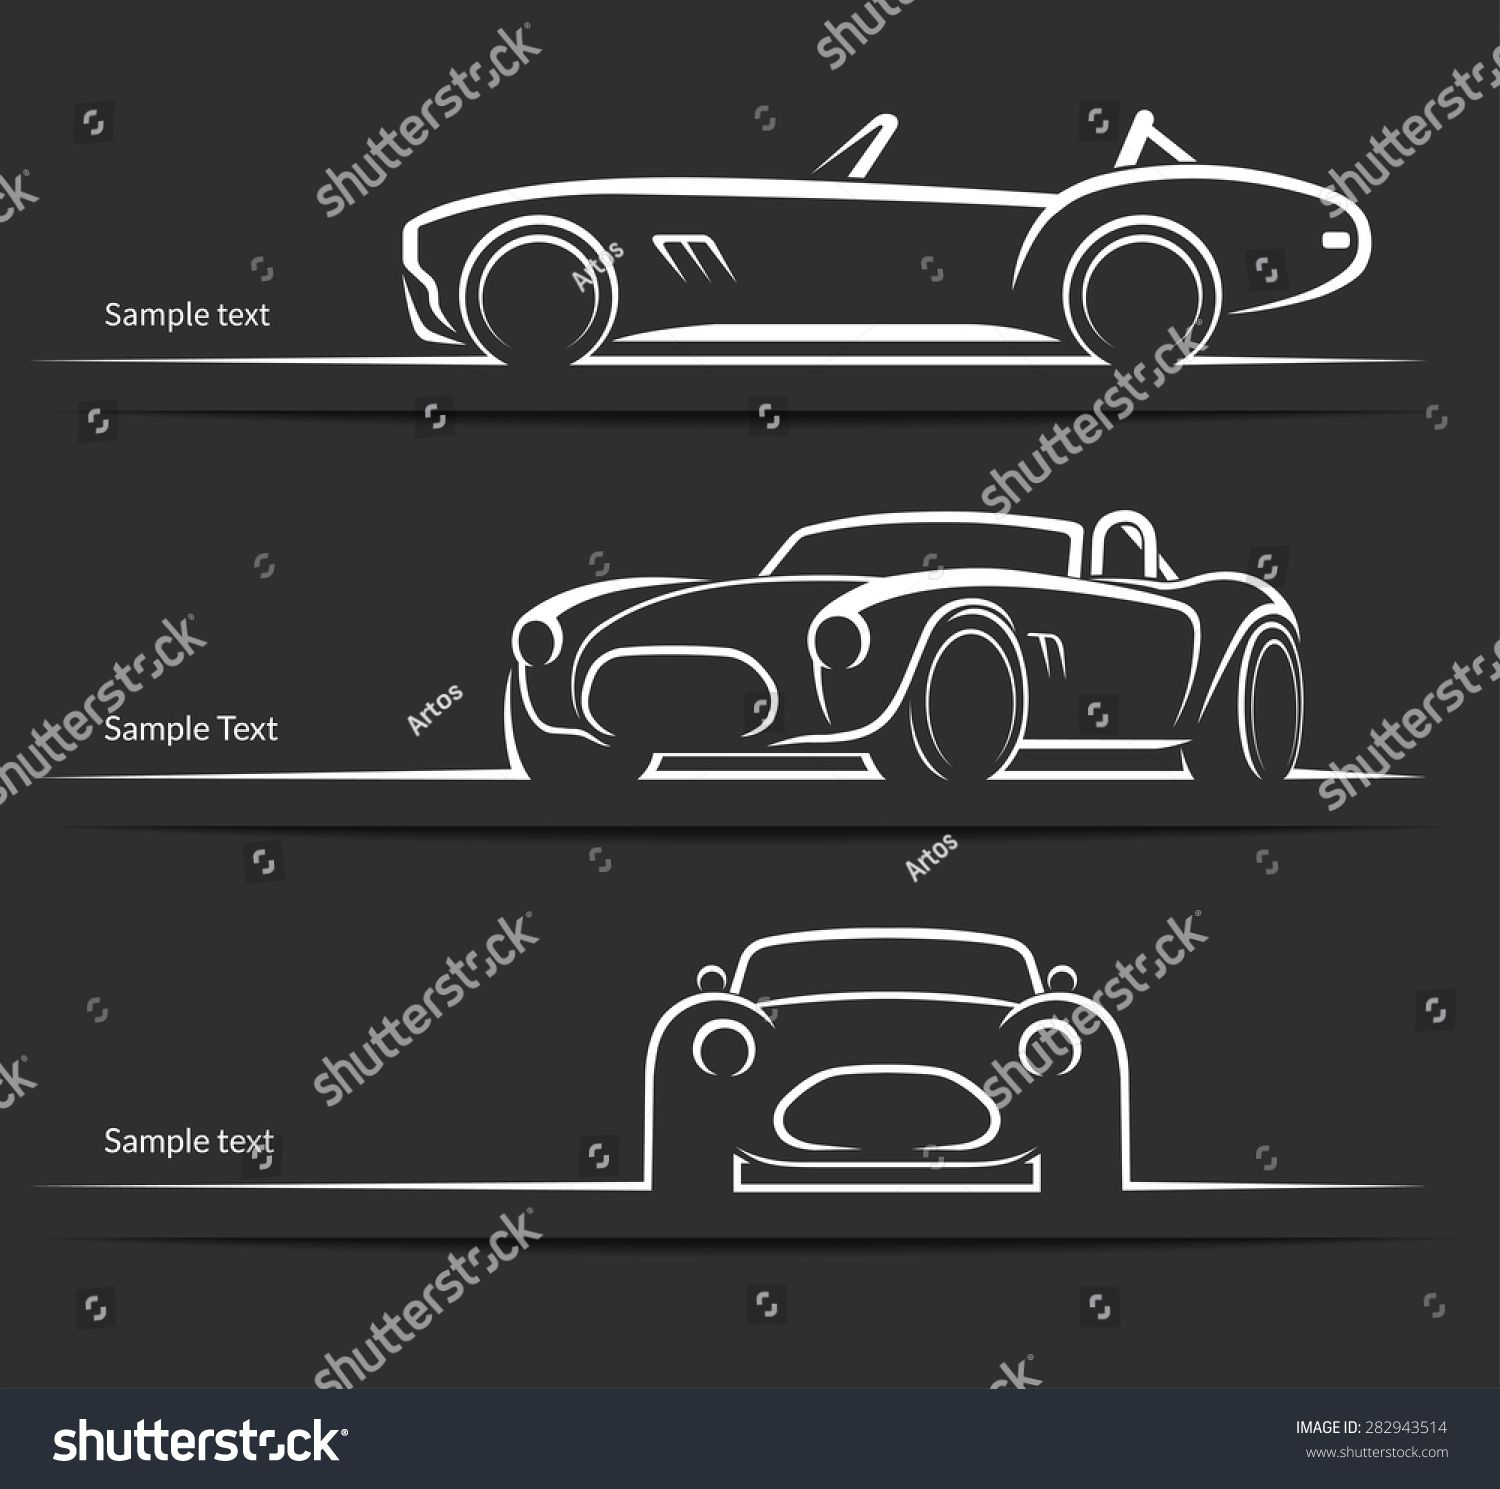 Set Of Vintage Classic Sports Car Silhouettes Outlines Contours Isolated On Dark Background Vector Illus Car Silhouette Classic Sports Cars Old Vintage Cars